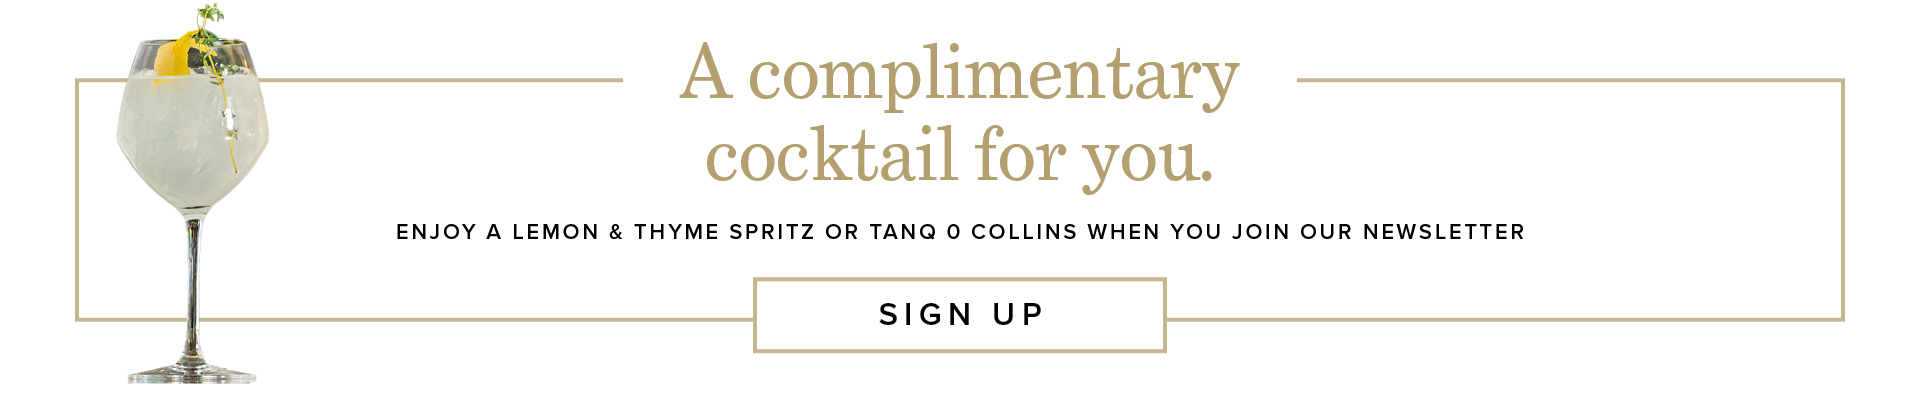 Sign up for a complimentary cocktail